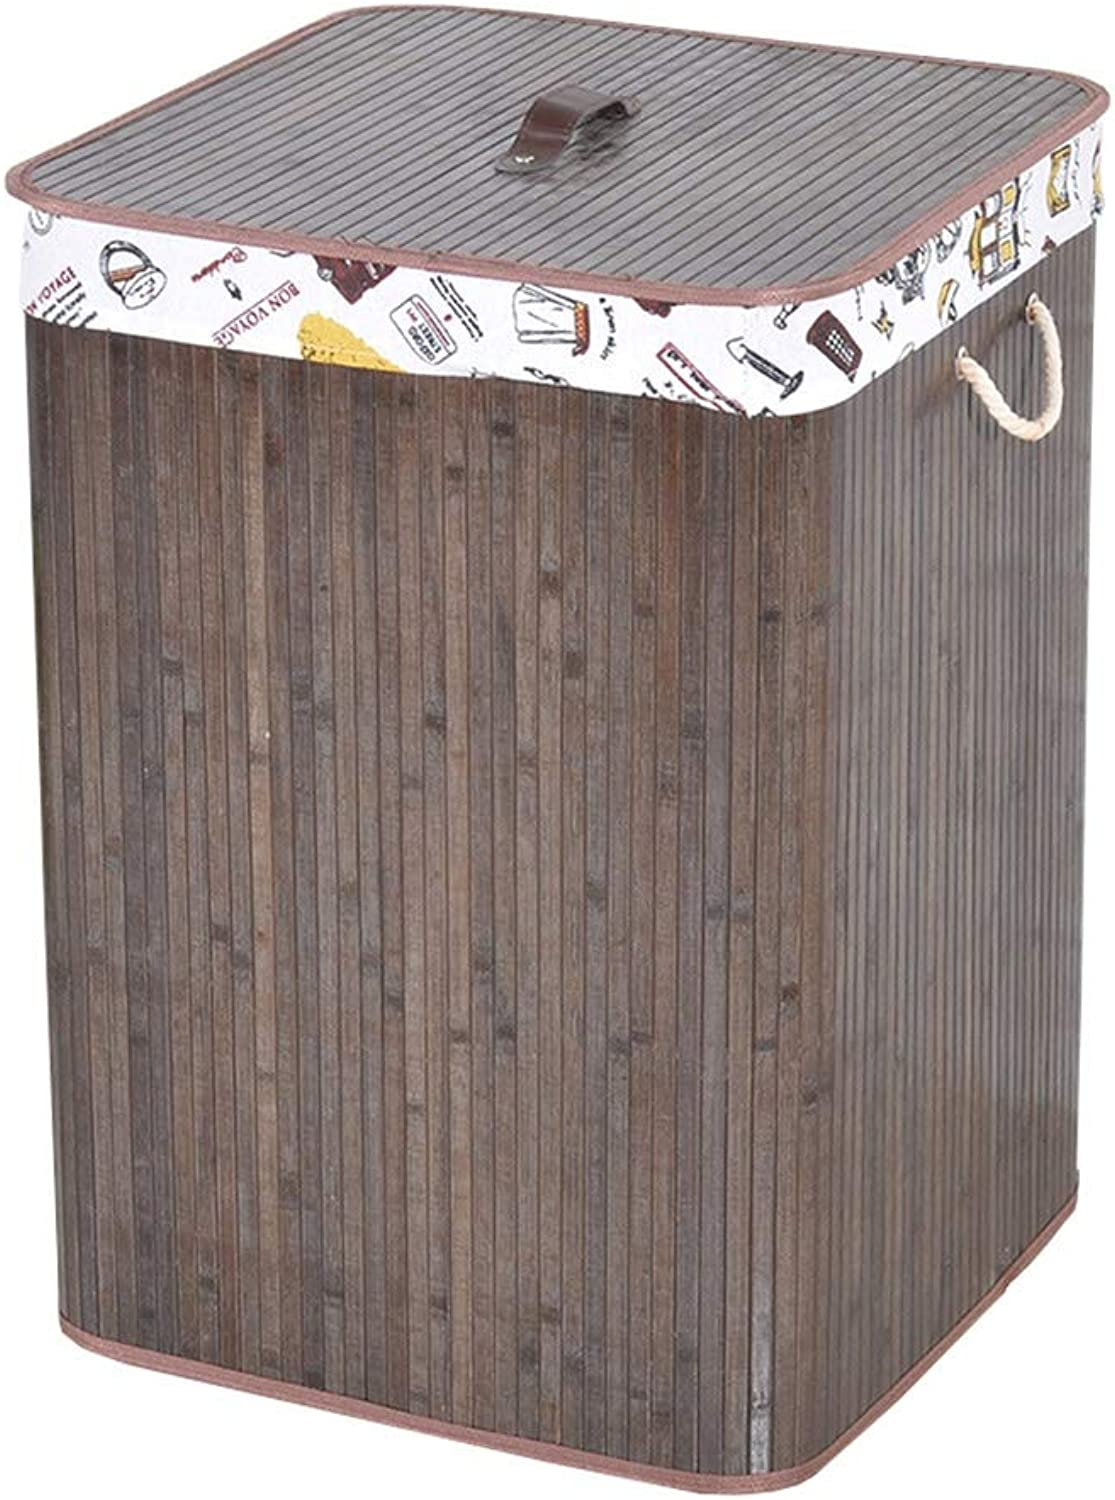 ZHANGQIANG Storage Basket Laundry Basket Rattan Laundry Hamper Flip Lid Storage Box Clothes Toy Storage (color   Dark Brown Square Size, Size   1)